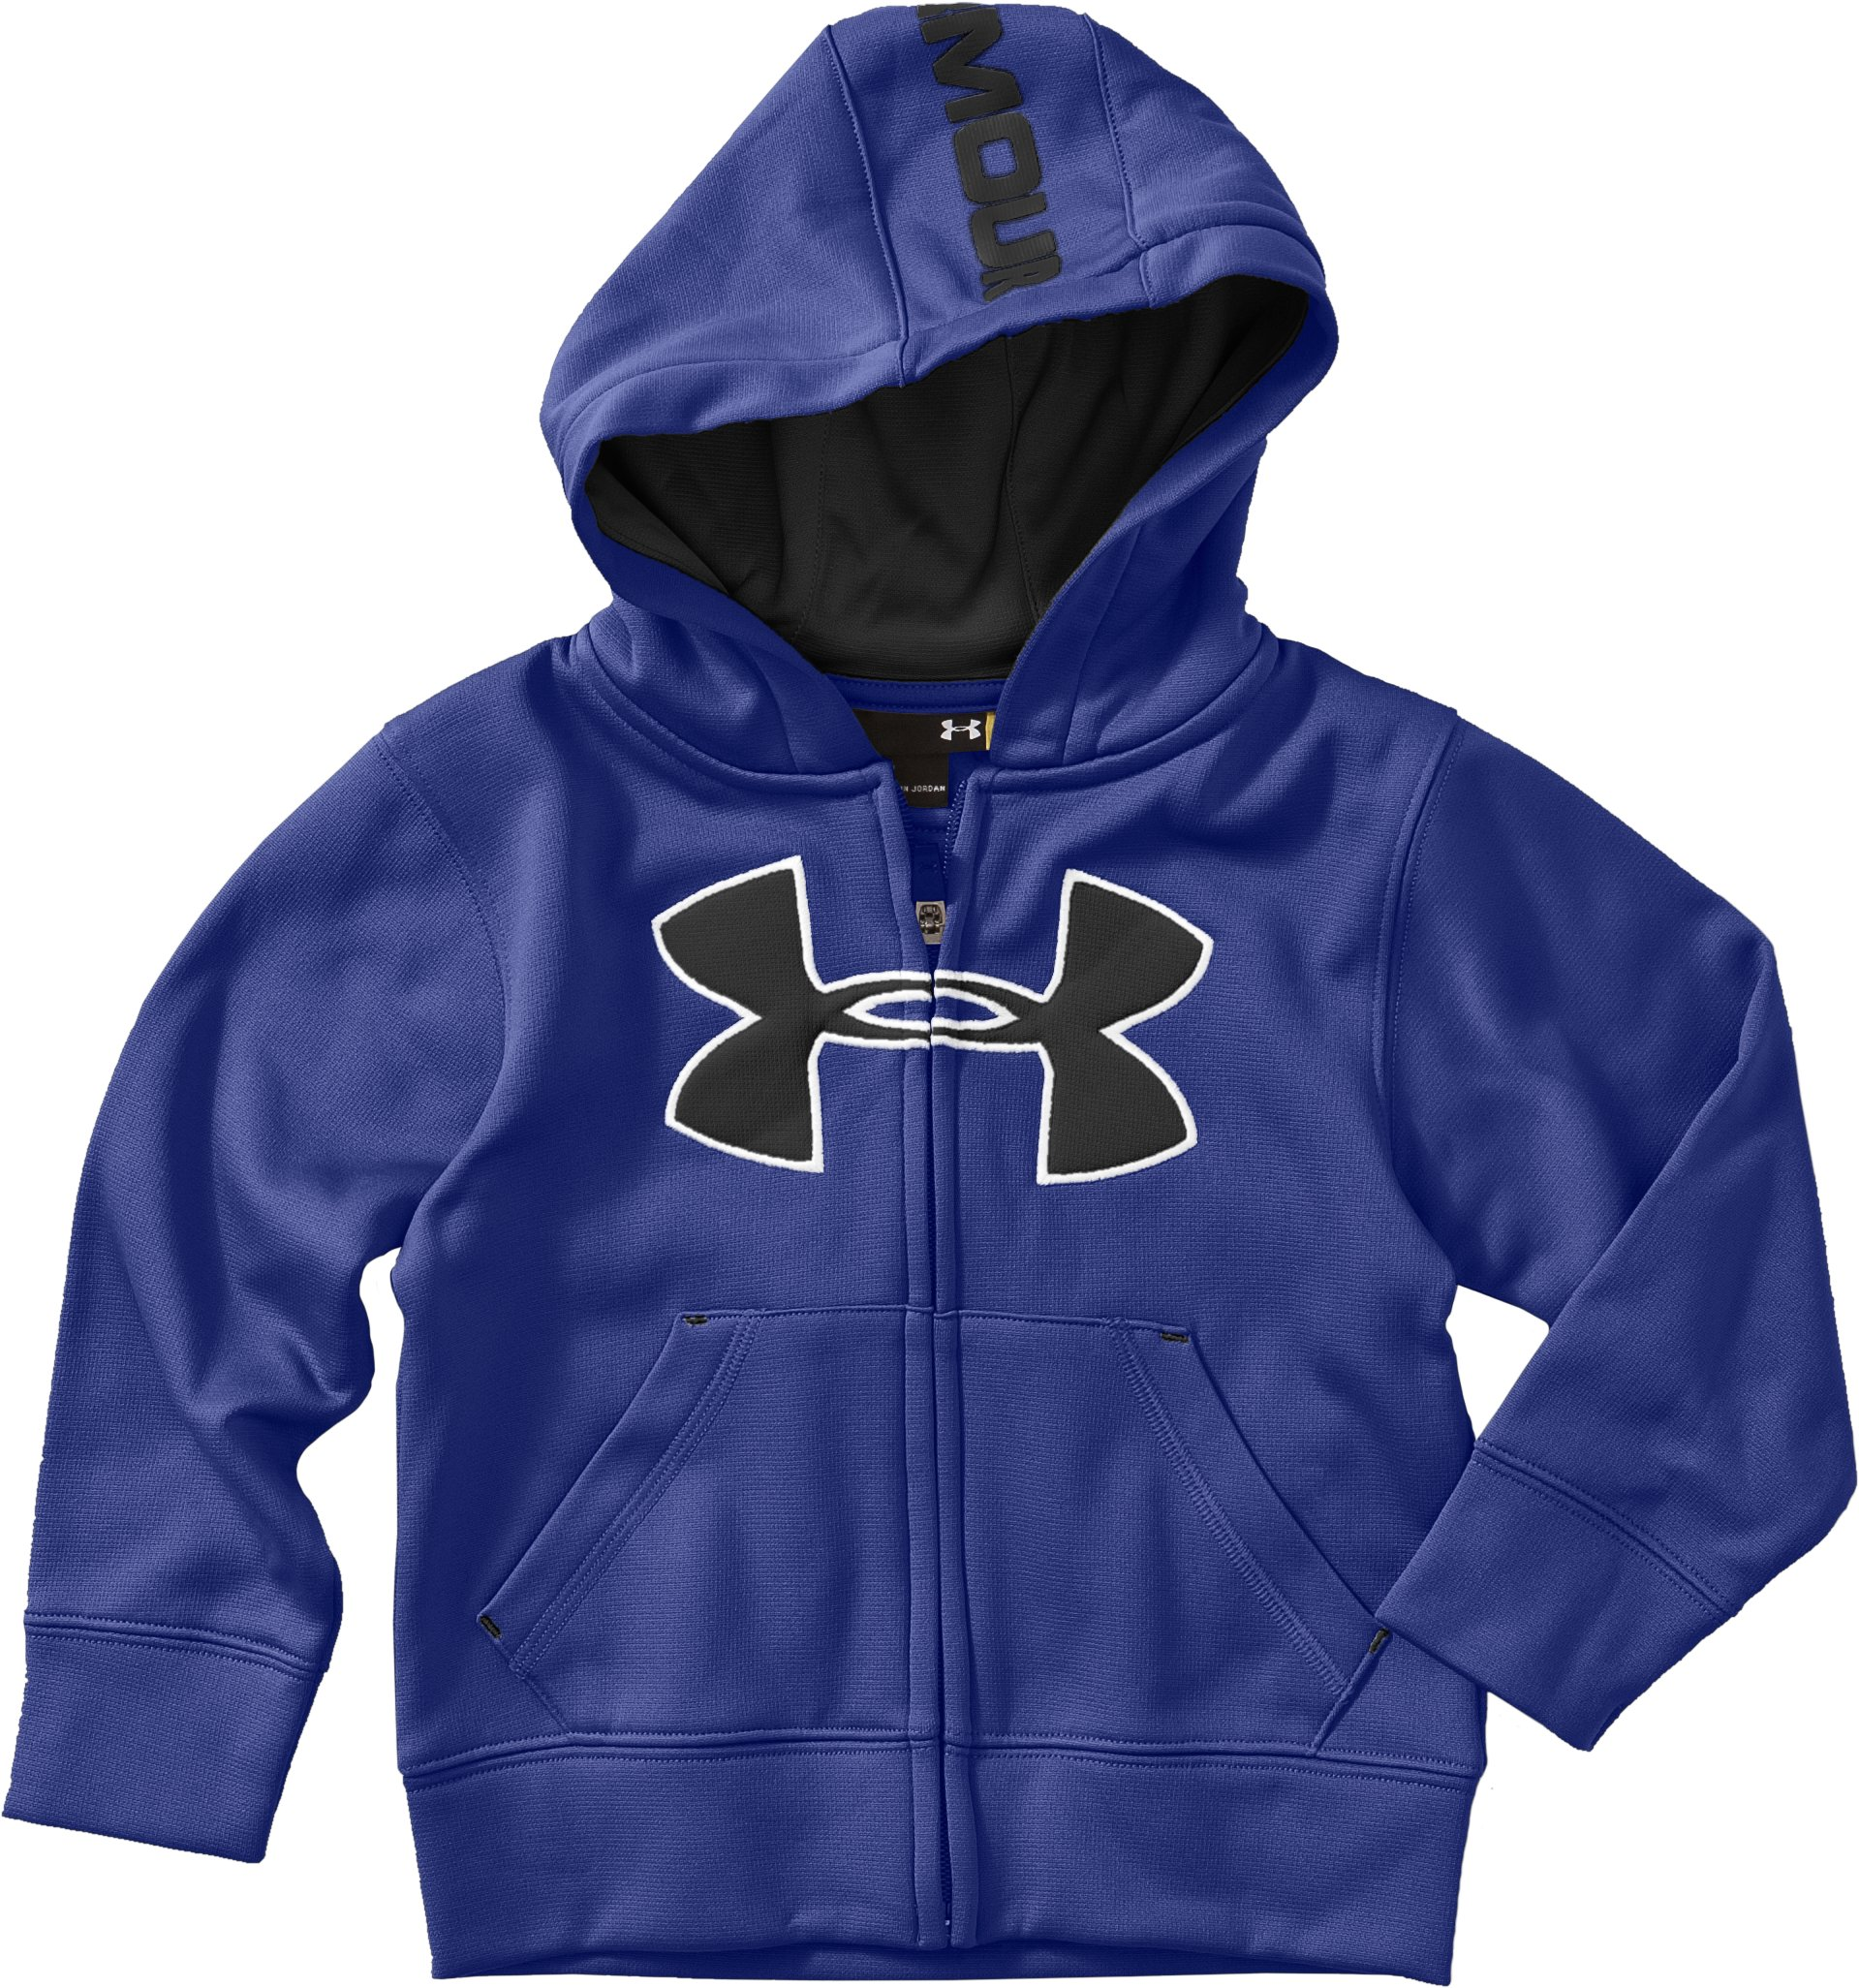 Boys' 4-7 Big Logo Fleece Hoodie, Royal, zoomed image